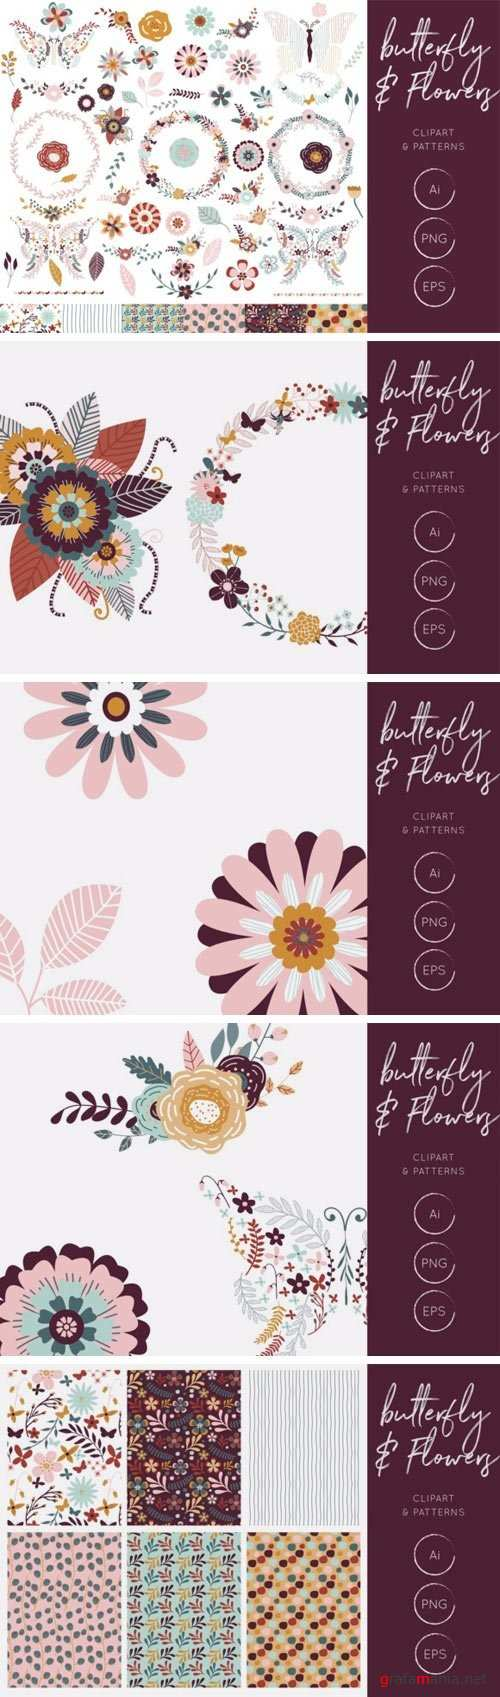 Butterfly & Flowers Clipart and Patterns